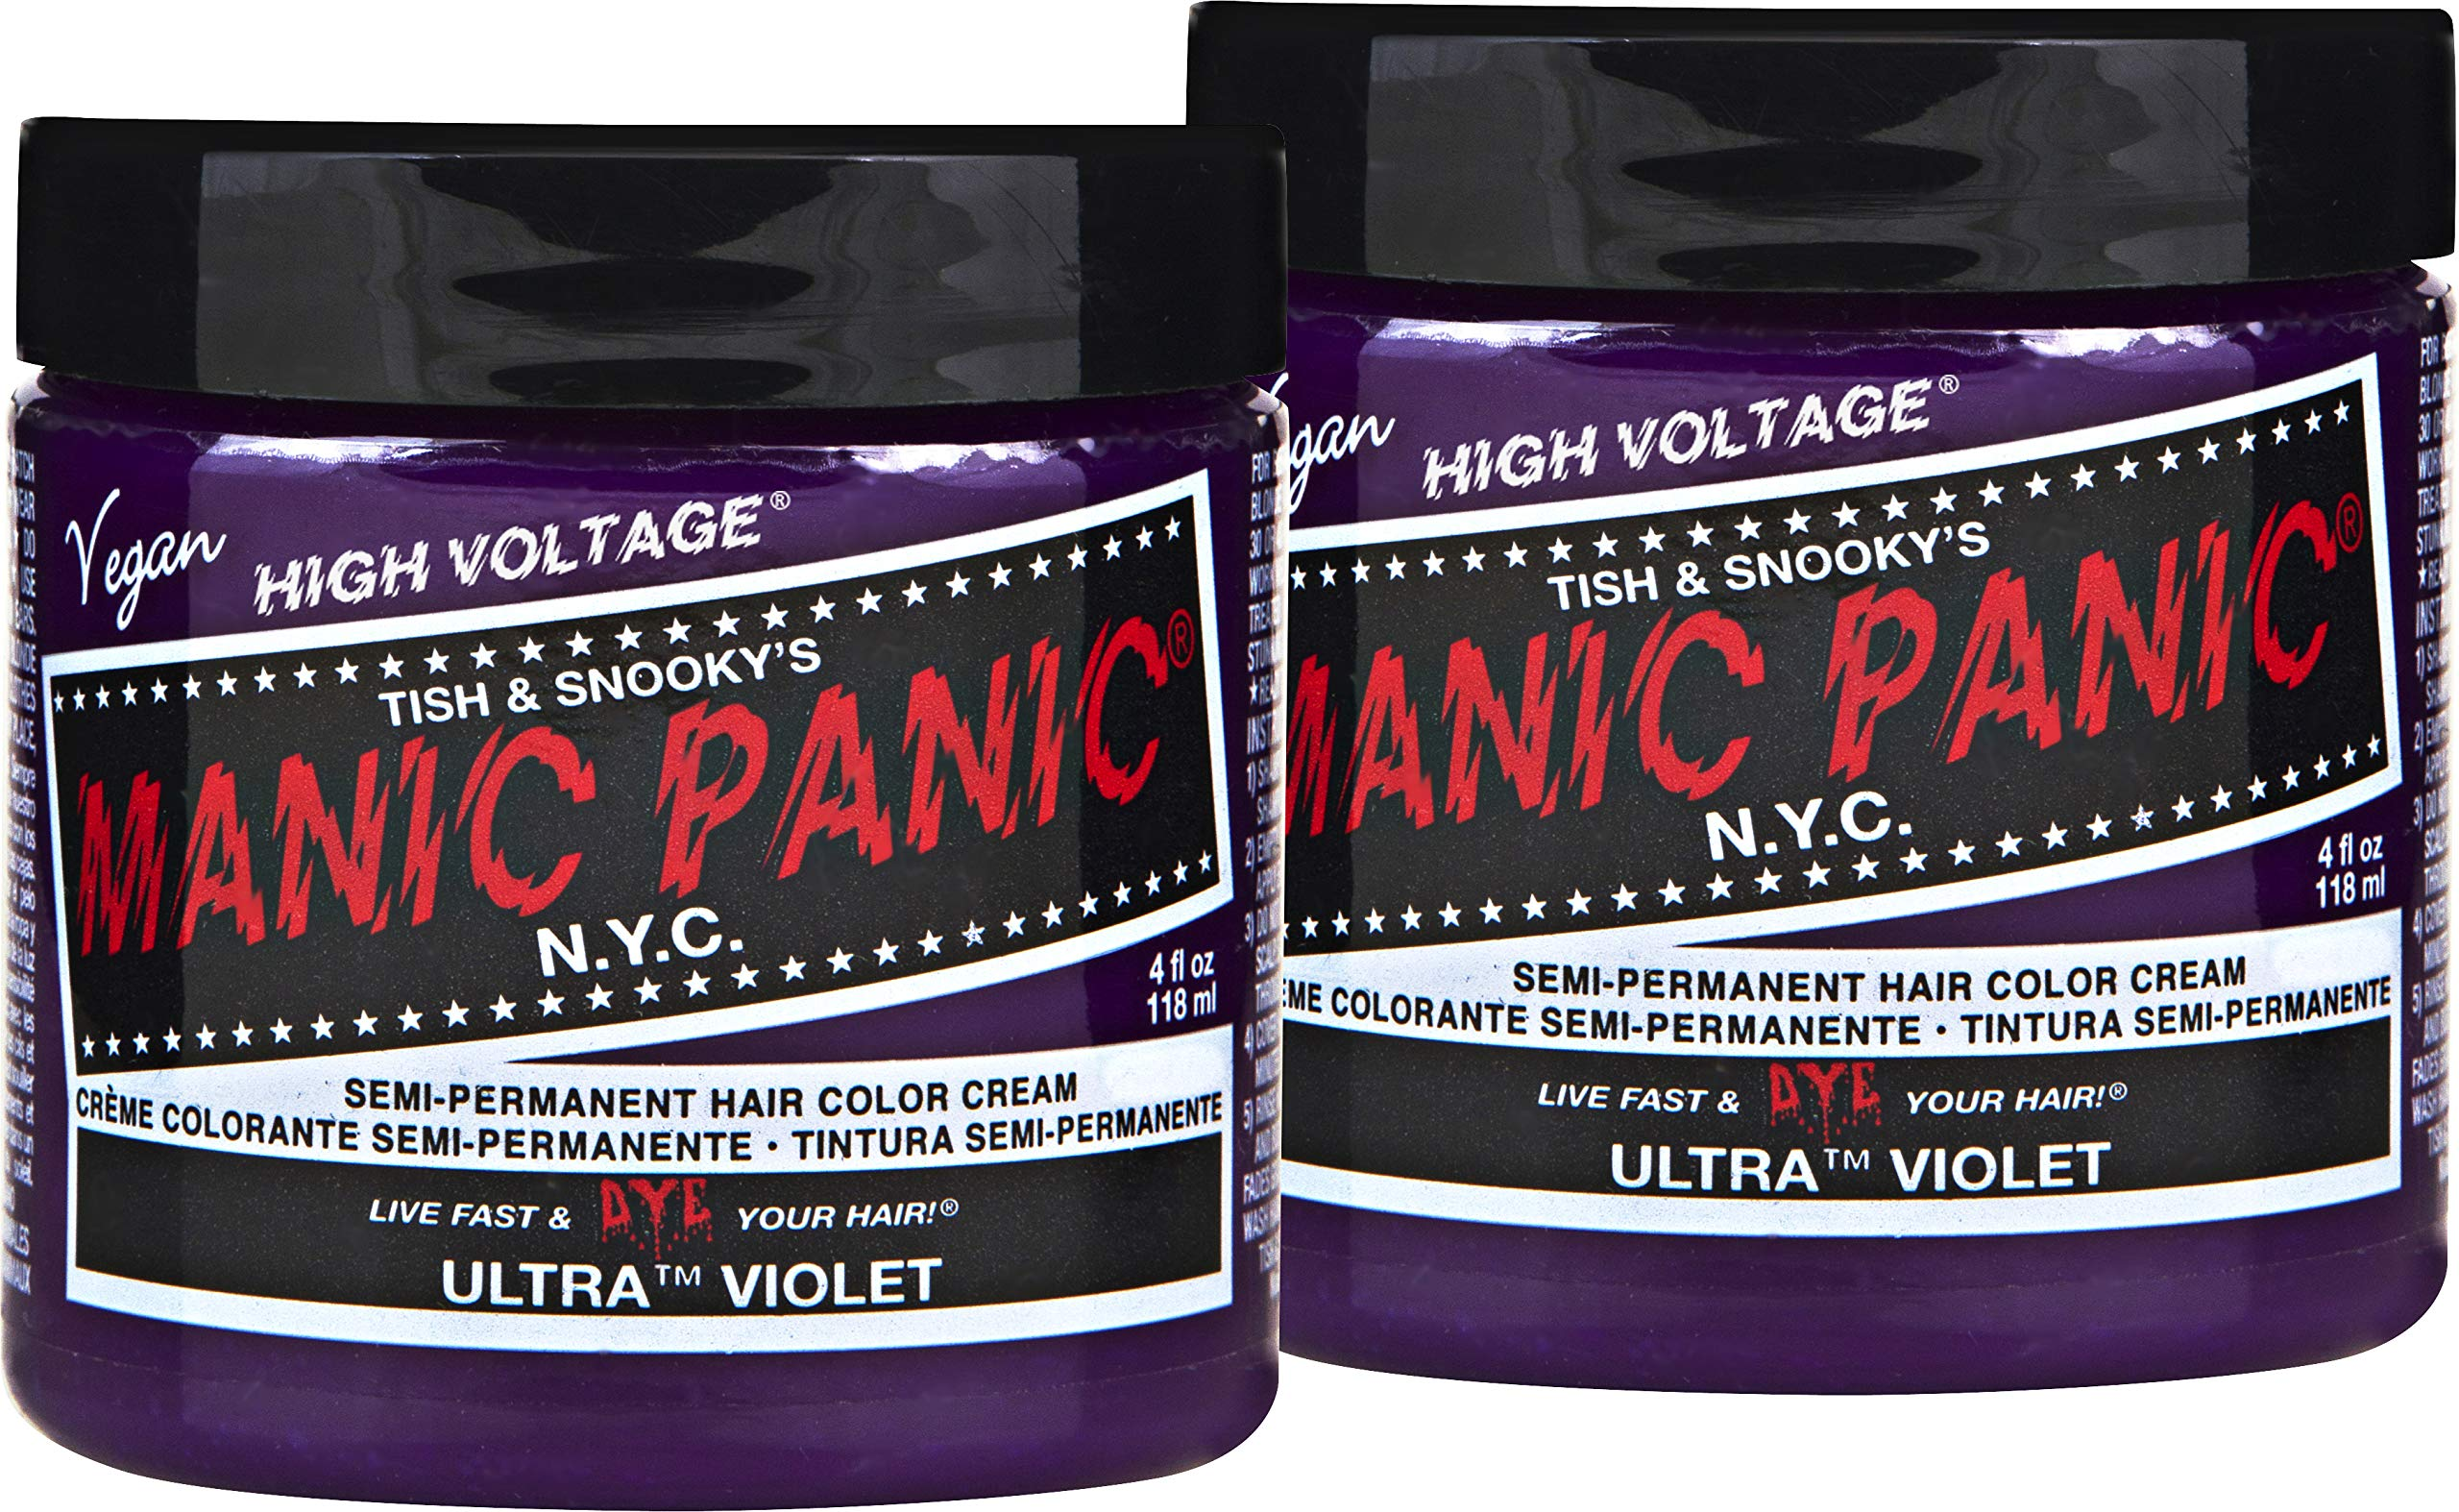 Manic Panic Ultra Violet Purple Color Cream (2-Pack) Classic High Voltage Semi-Permanent Hair Dye - Vivid, Purple Shade For Dark or Light Hair. Vegan, PPD & Ammonia-Free. Ready-to-Use, No-Mix Coloring by MANIC PANIC